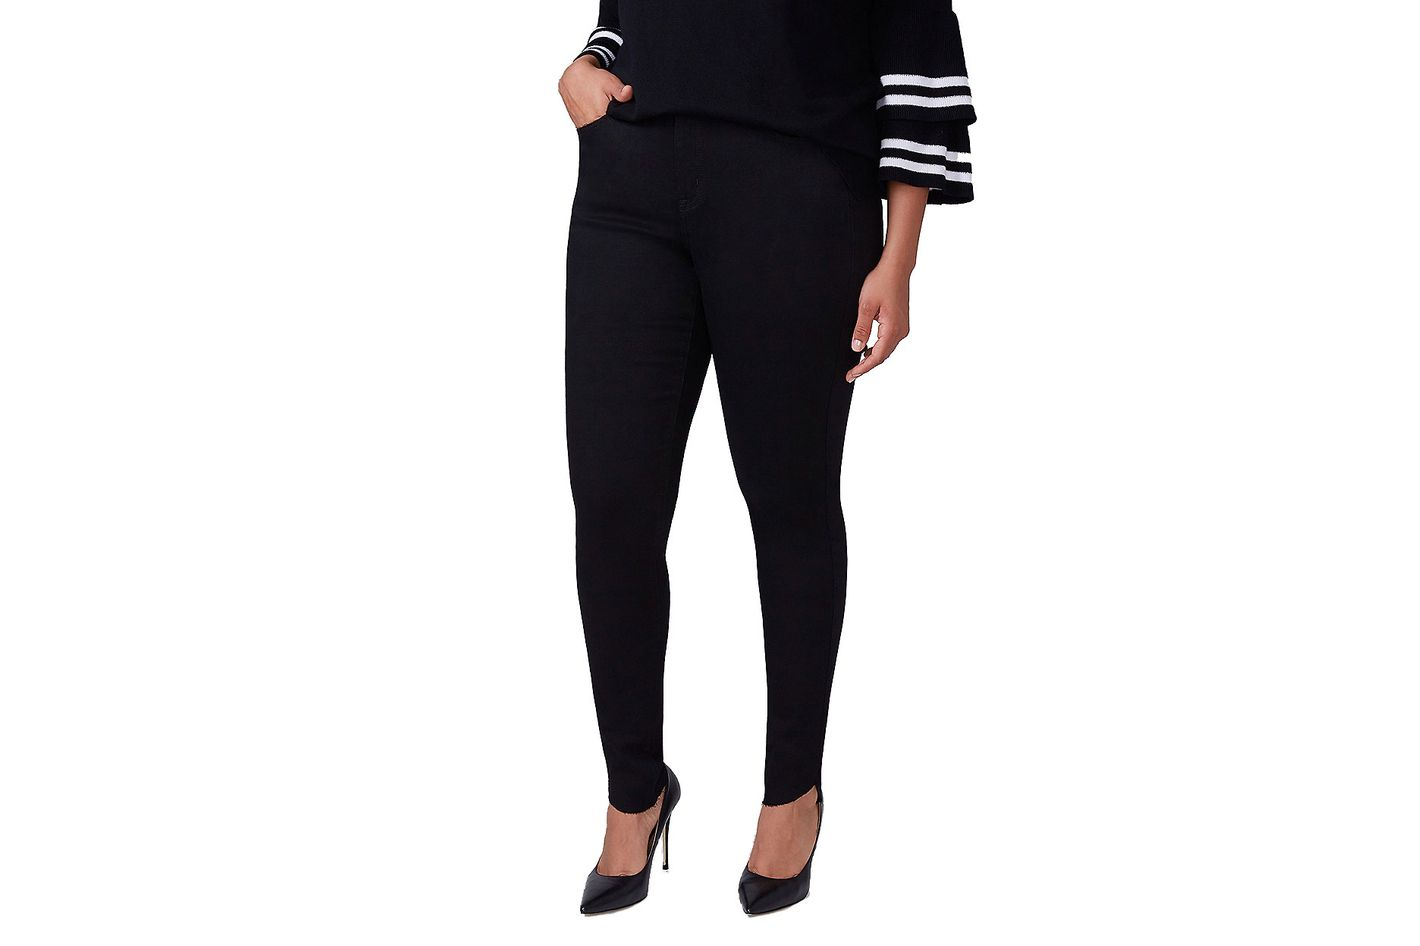 Lane Bryant Super Stretch Skinny Jeans with Power Pockets